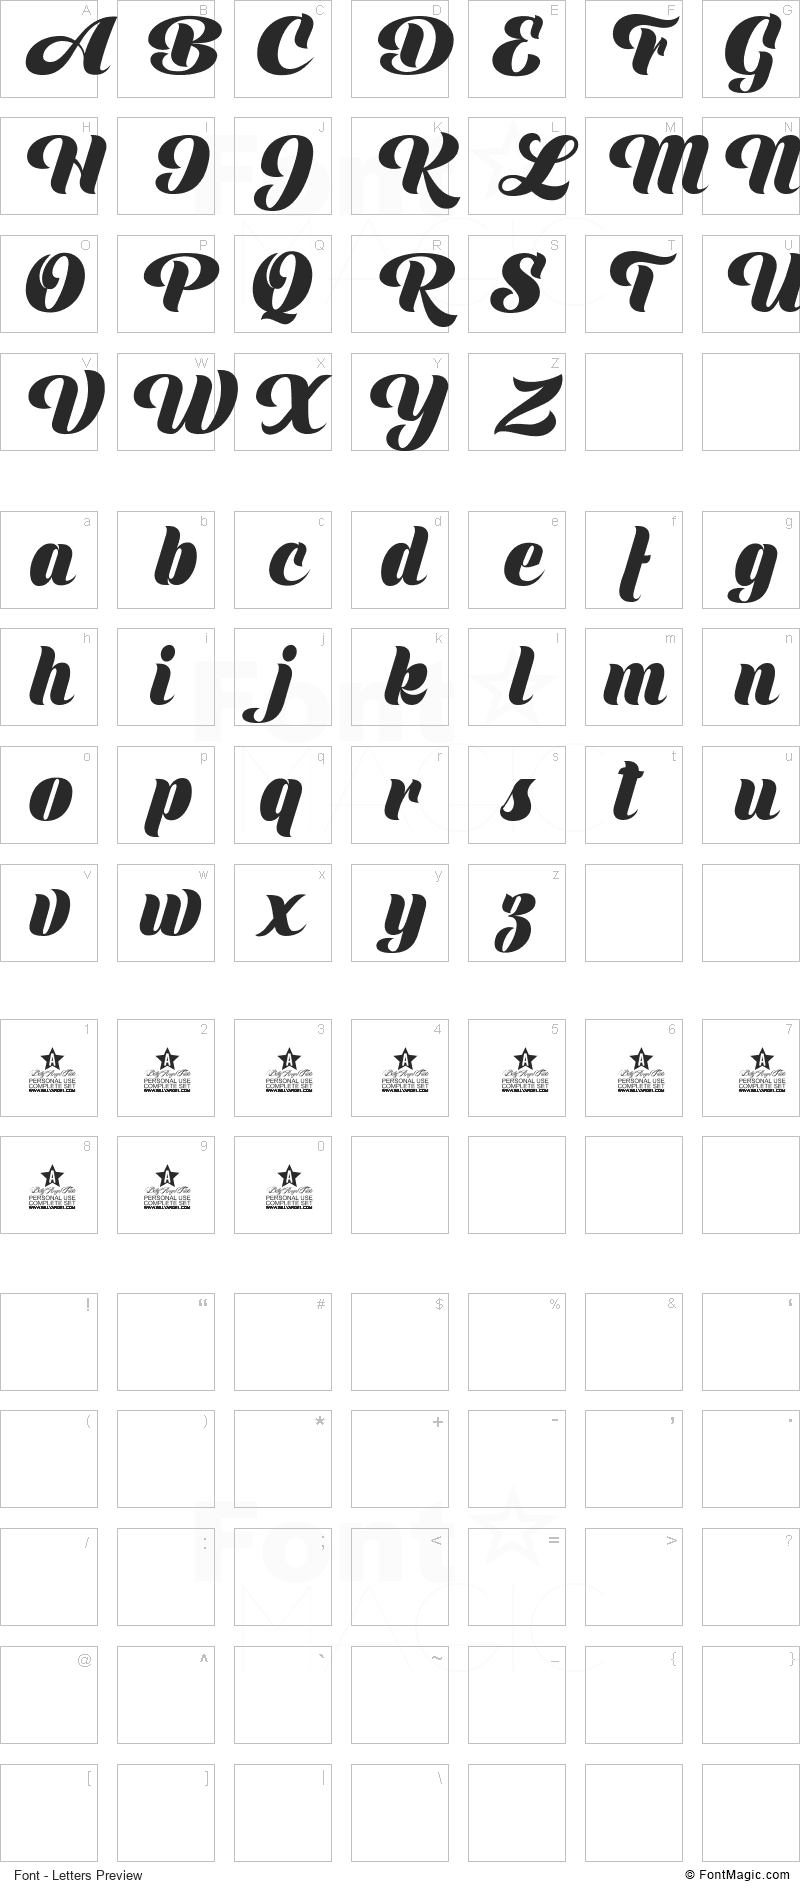 Shine Font - All Latters Preview Chart